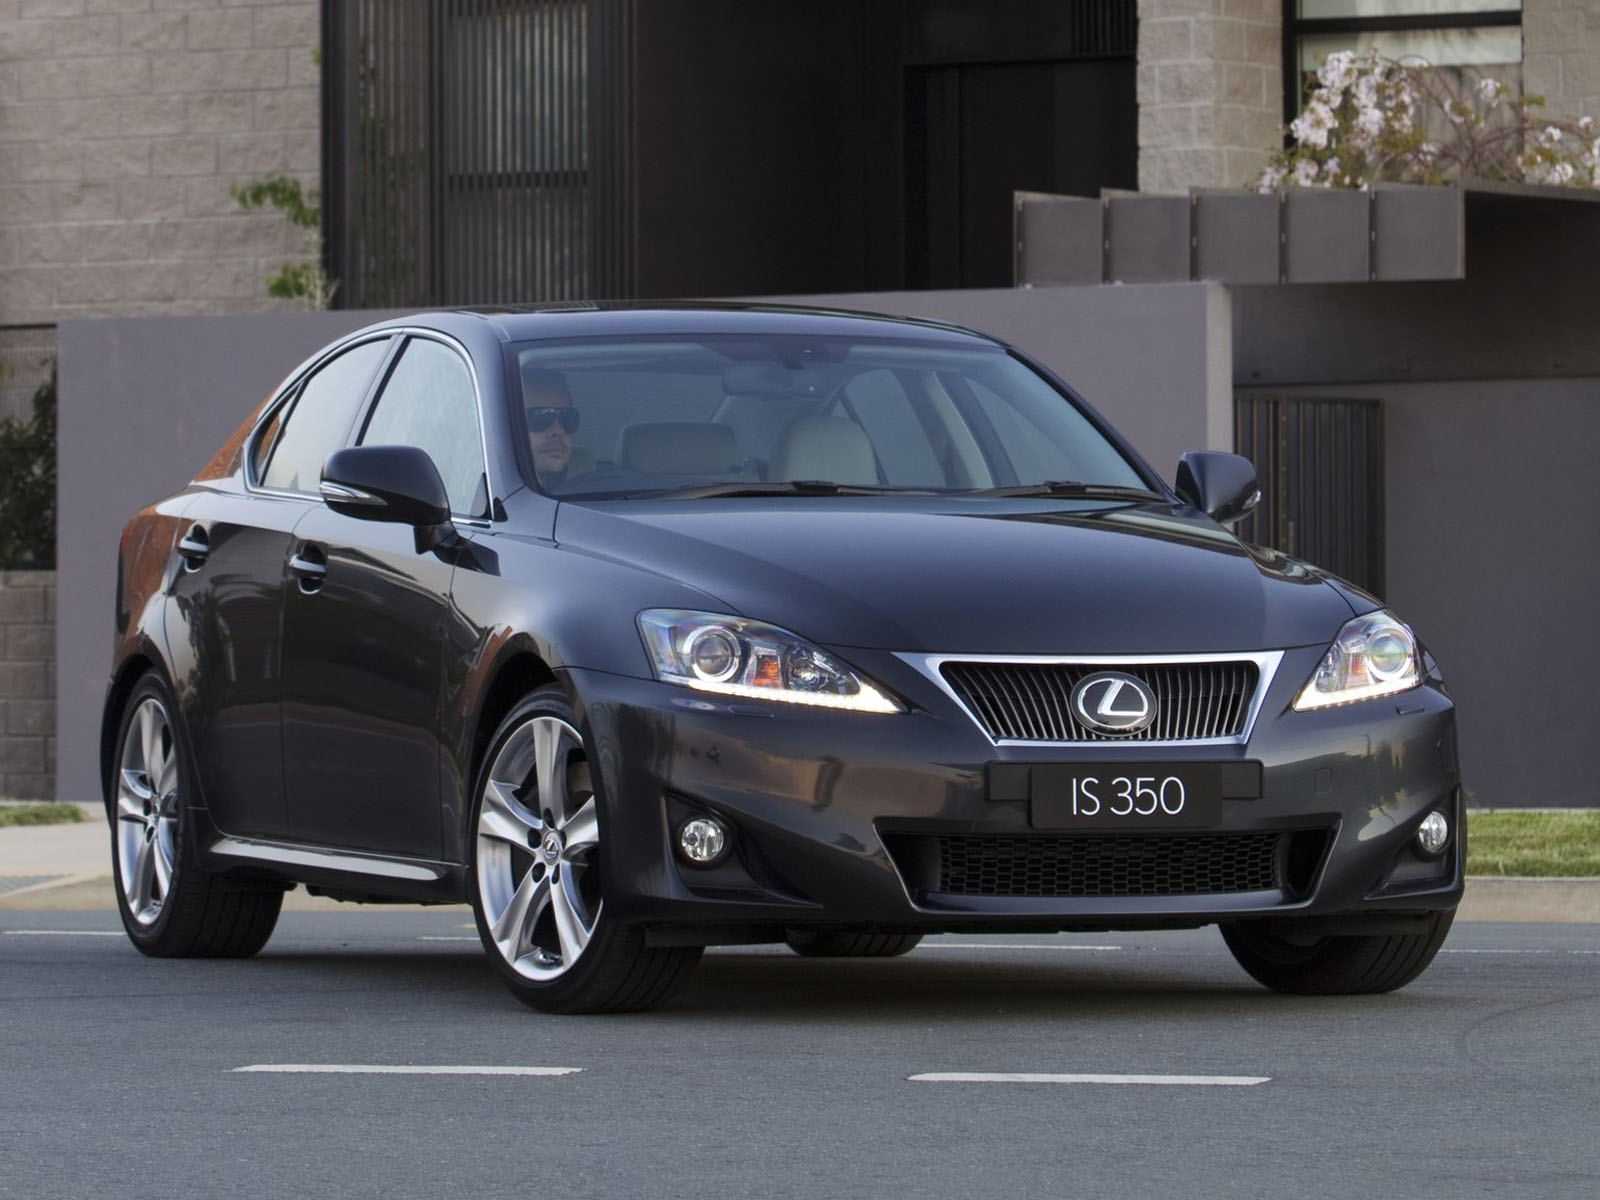 2011 Lexus Is 350 #2